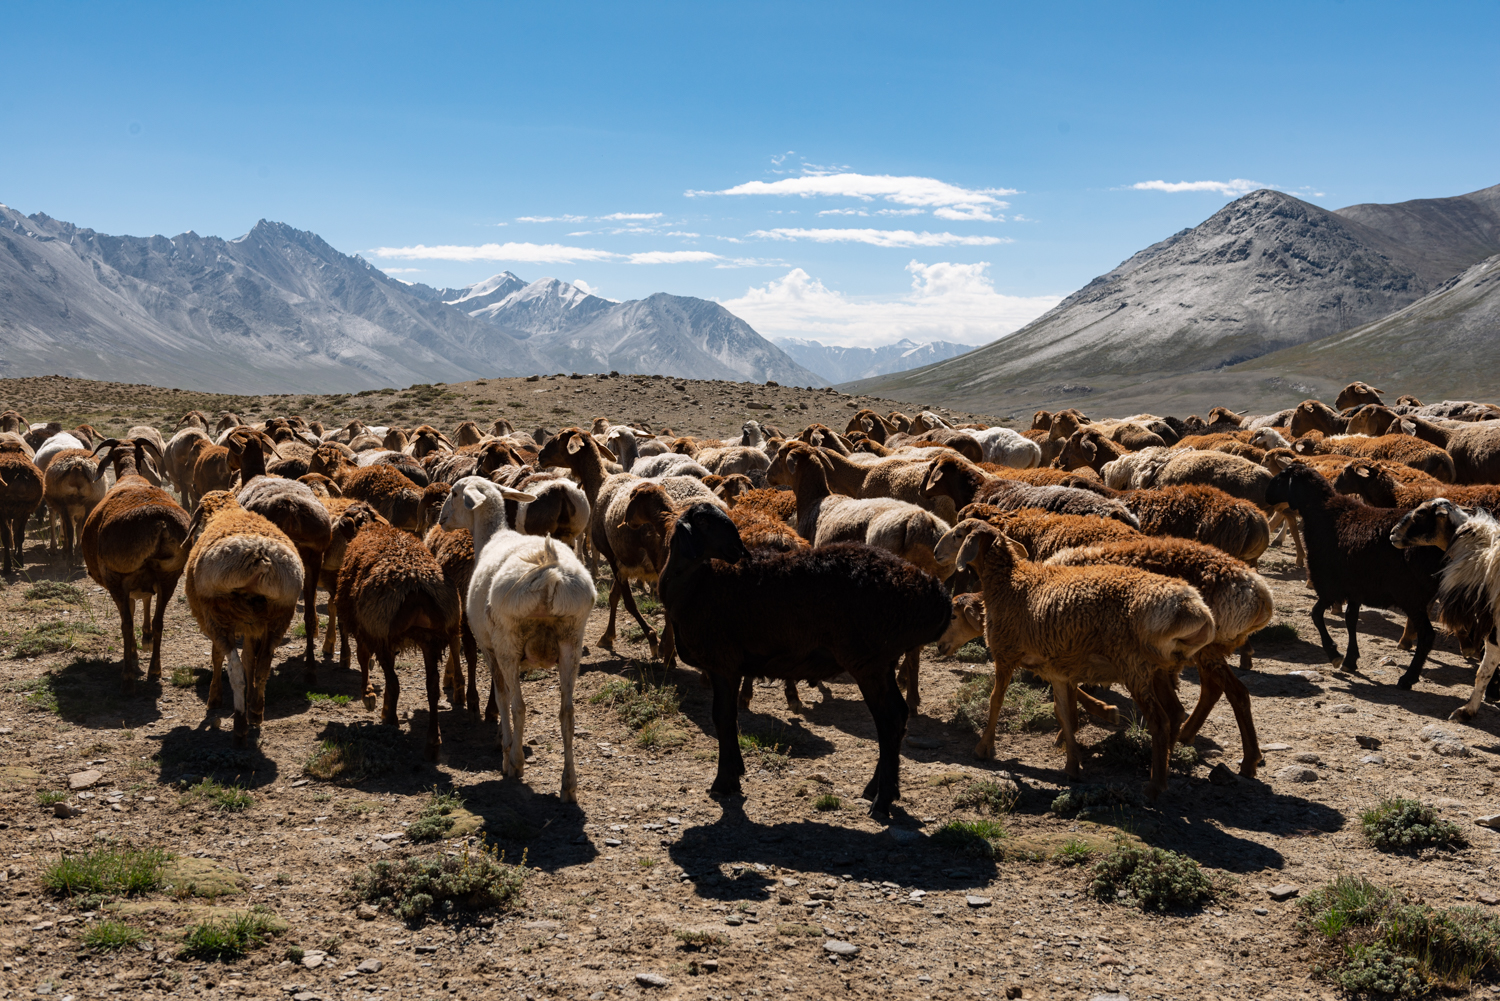 Fat-tailed sheep and goats